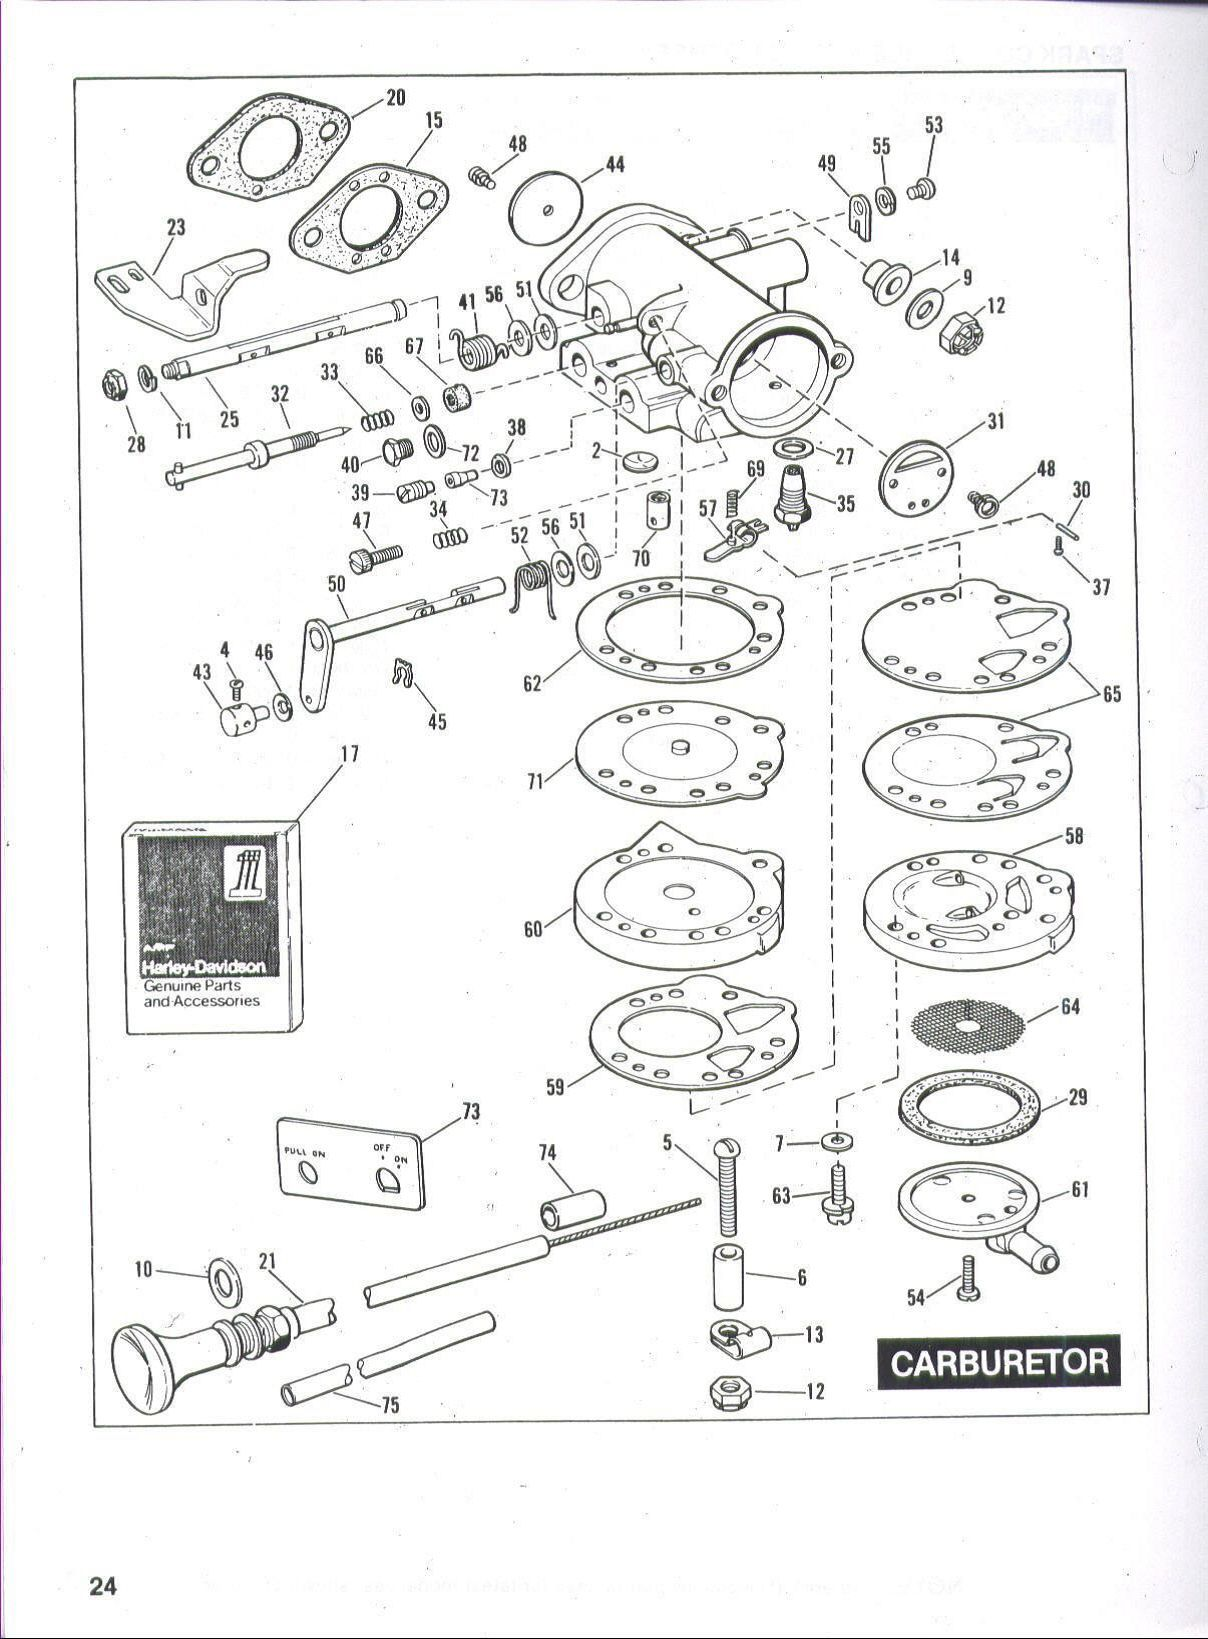 5176dbb44702a1adc4080edf7301936d harley davidson golf cart carburetor diagram utv stuff westinghouse golf cart wiring diagram at arjmand.co